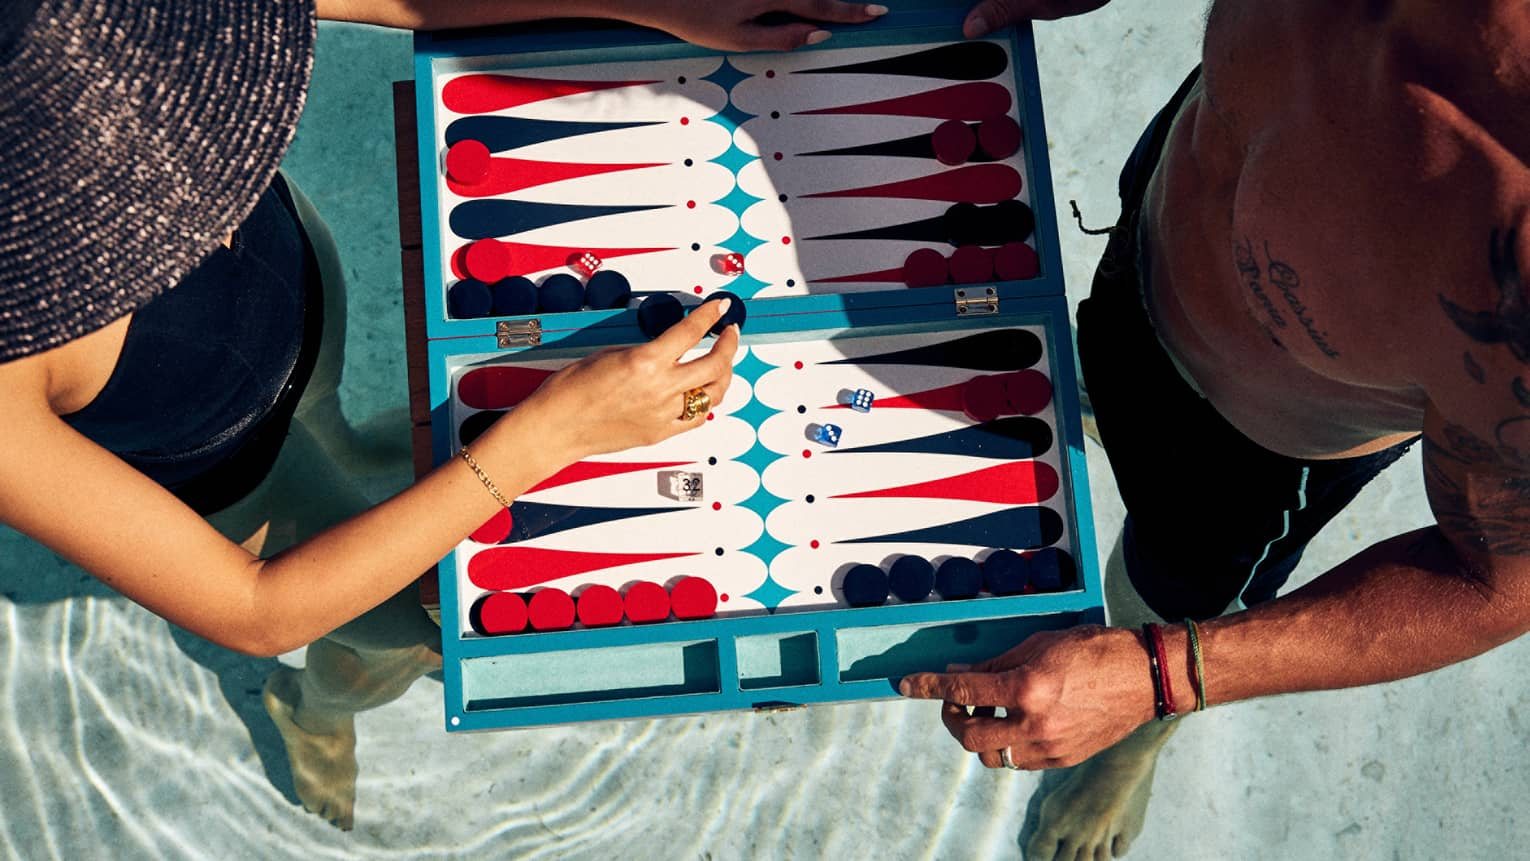 Aerial shot of man and woman in a pool, playing a floating game of backgammon